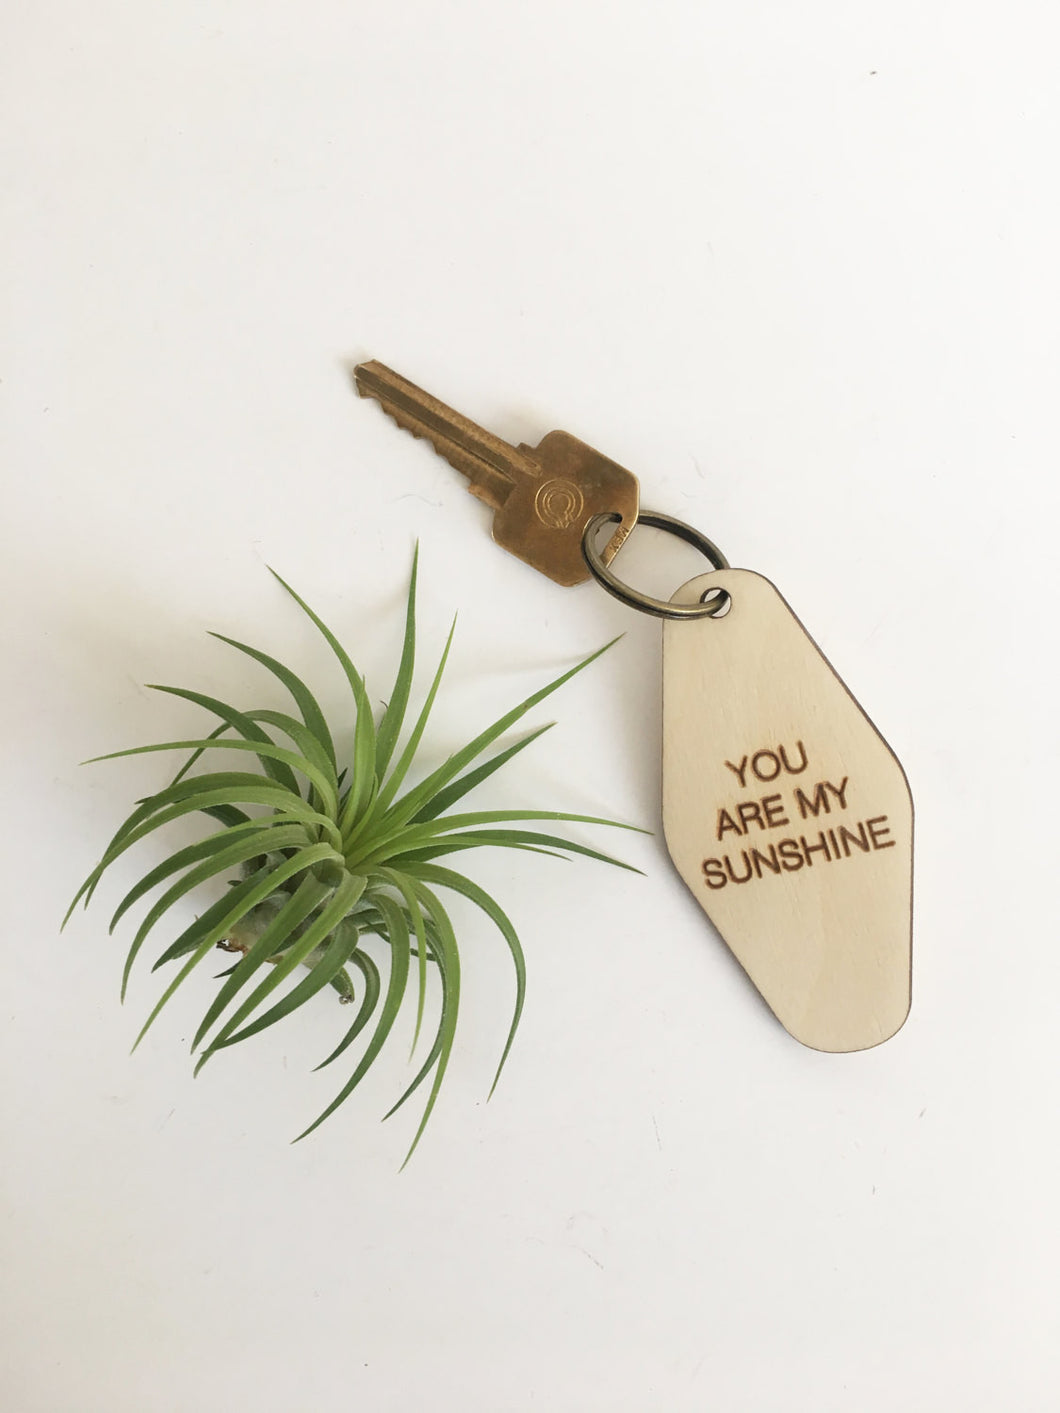 retro key fob >> wooden key chain >> you are my sunshine